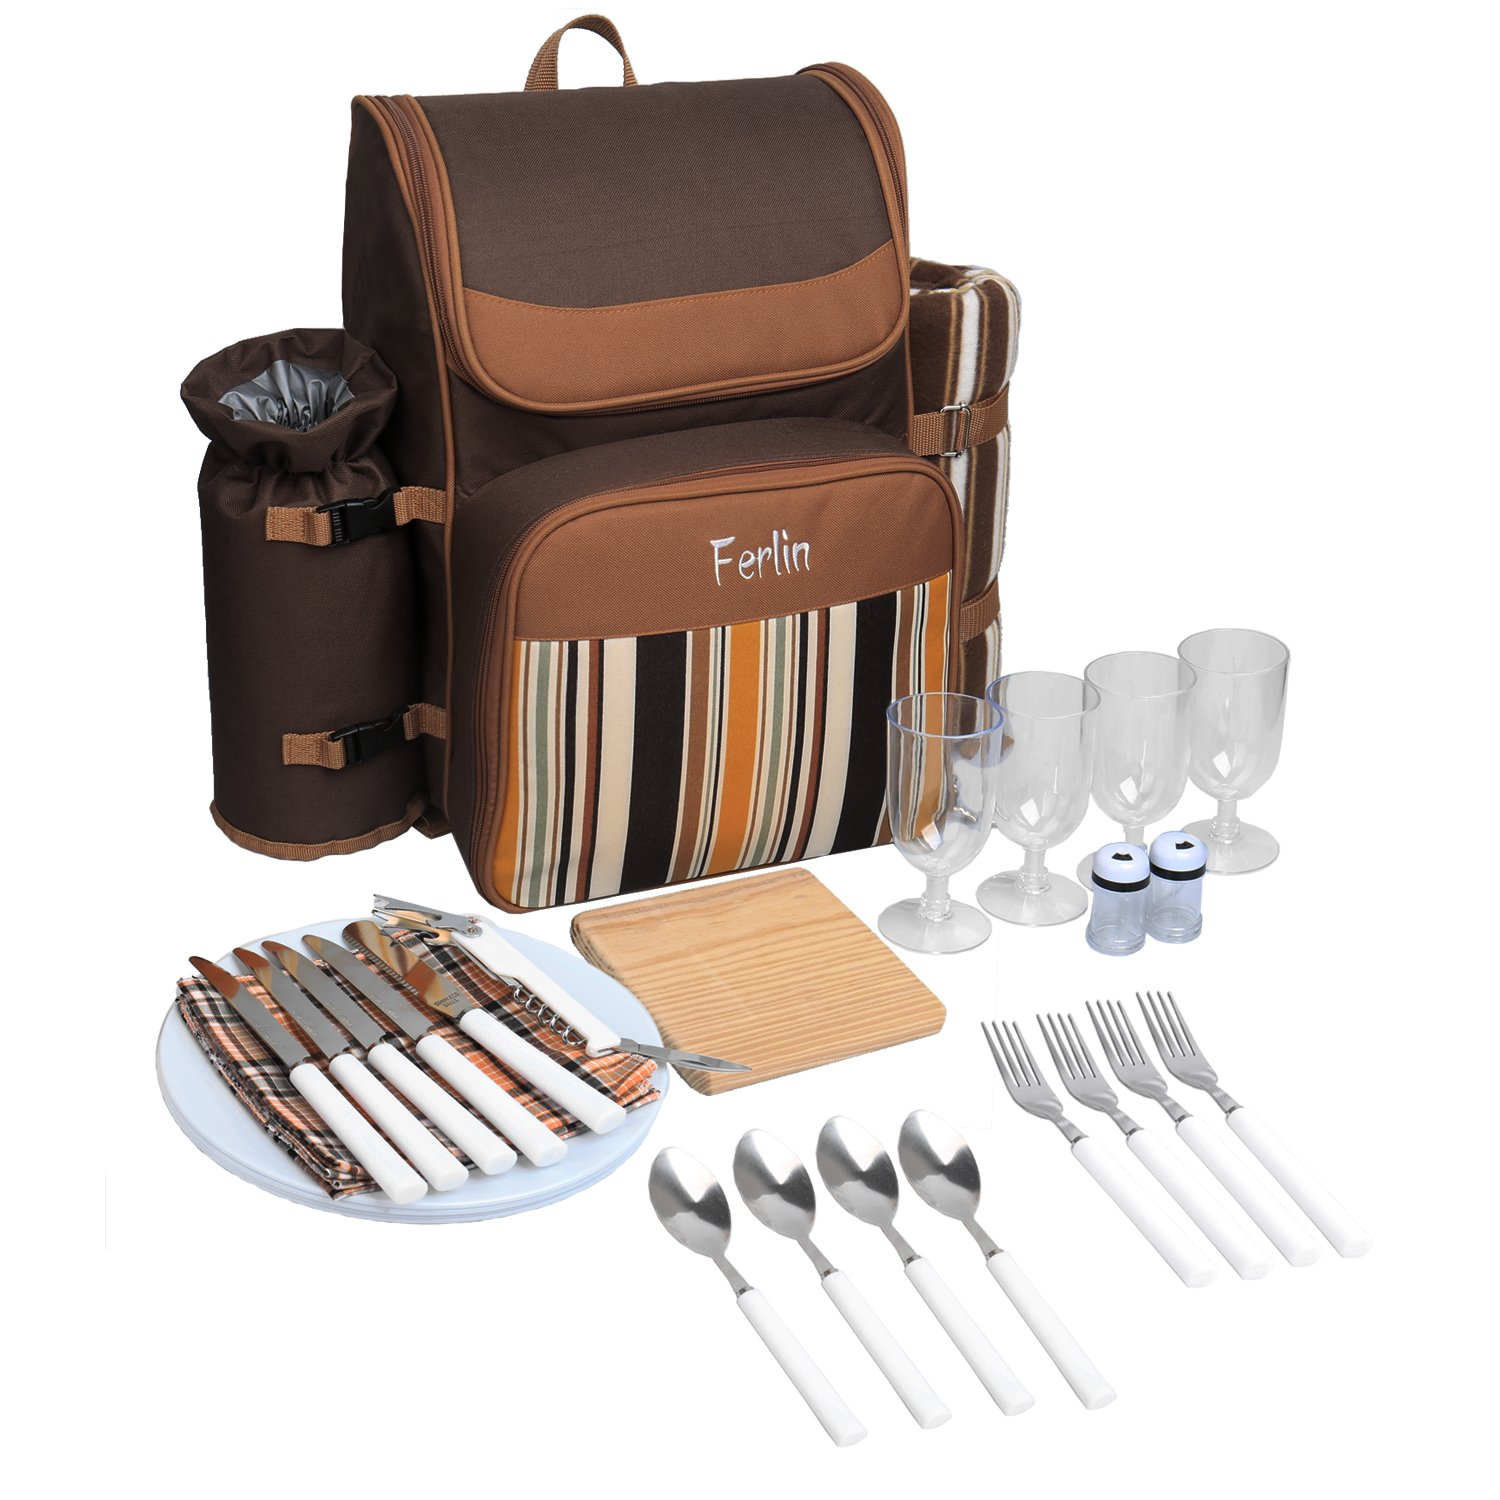 Ferlin Picnic Basket Backpack Set for 4 With Cooler Compartment, Detachable Bottle/Wine Holder, Fleece Blanket, Plates and Cutlery Set (Coffee)